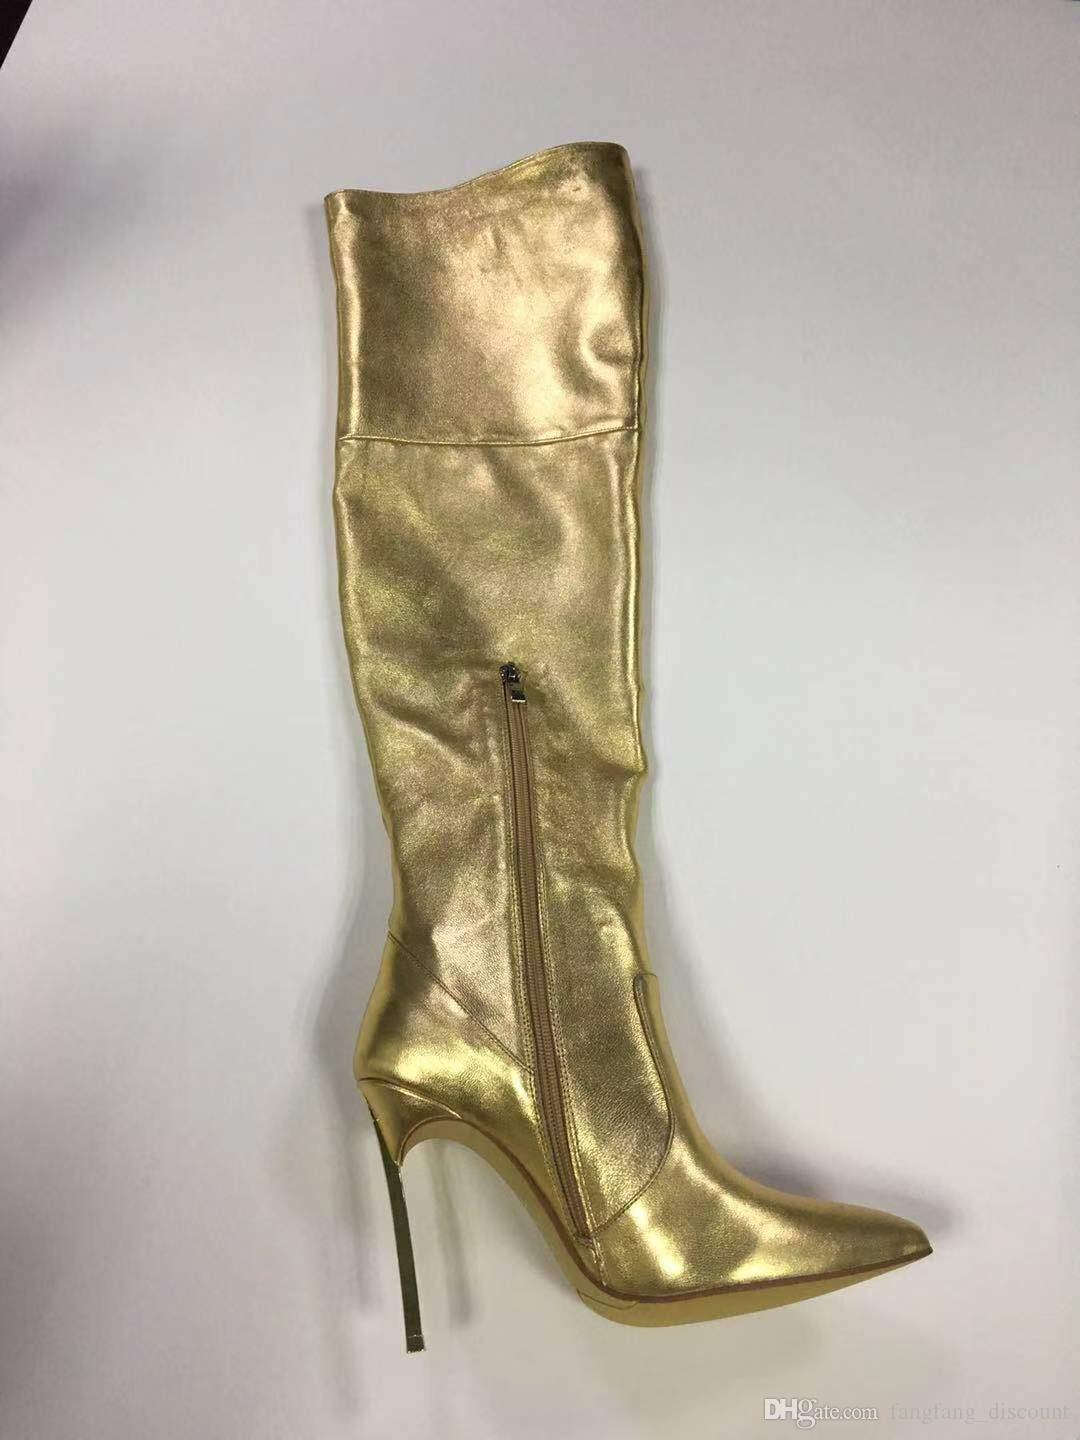 Early spring new gold sheepskin stiletto heel fashion all mathch women's fashion boots over the knee zipper boots